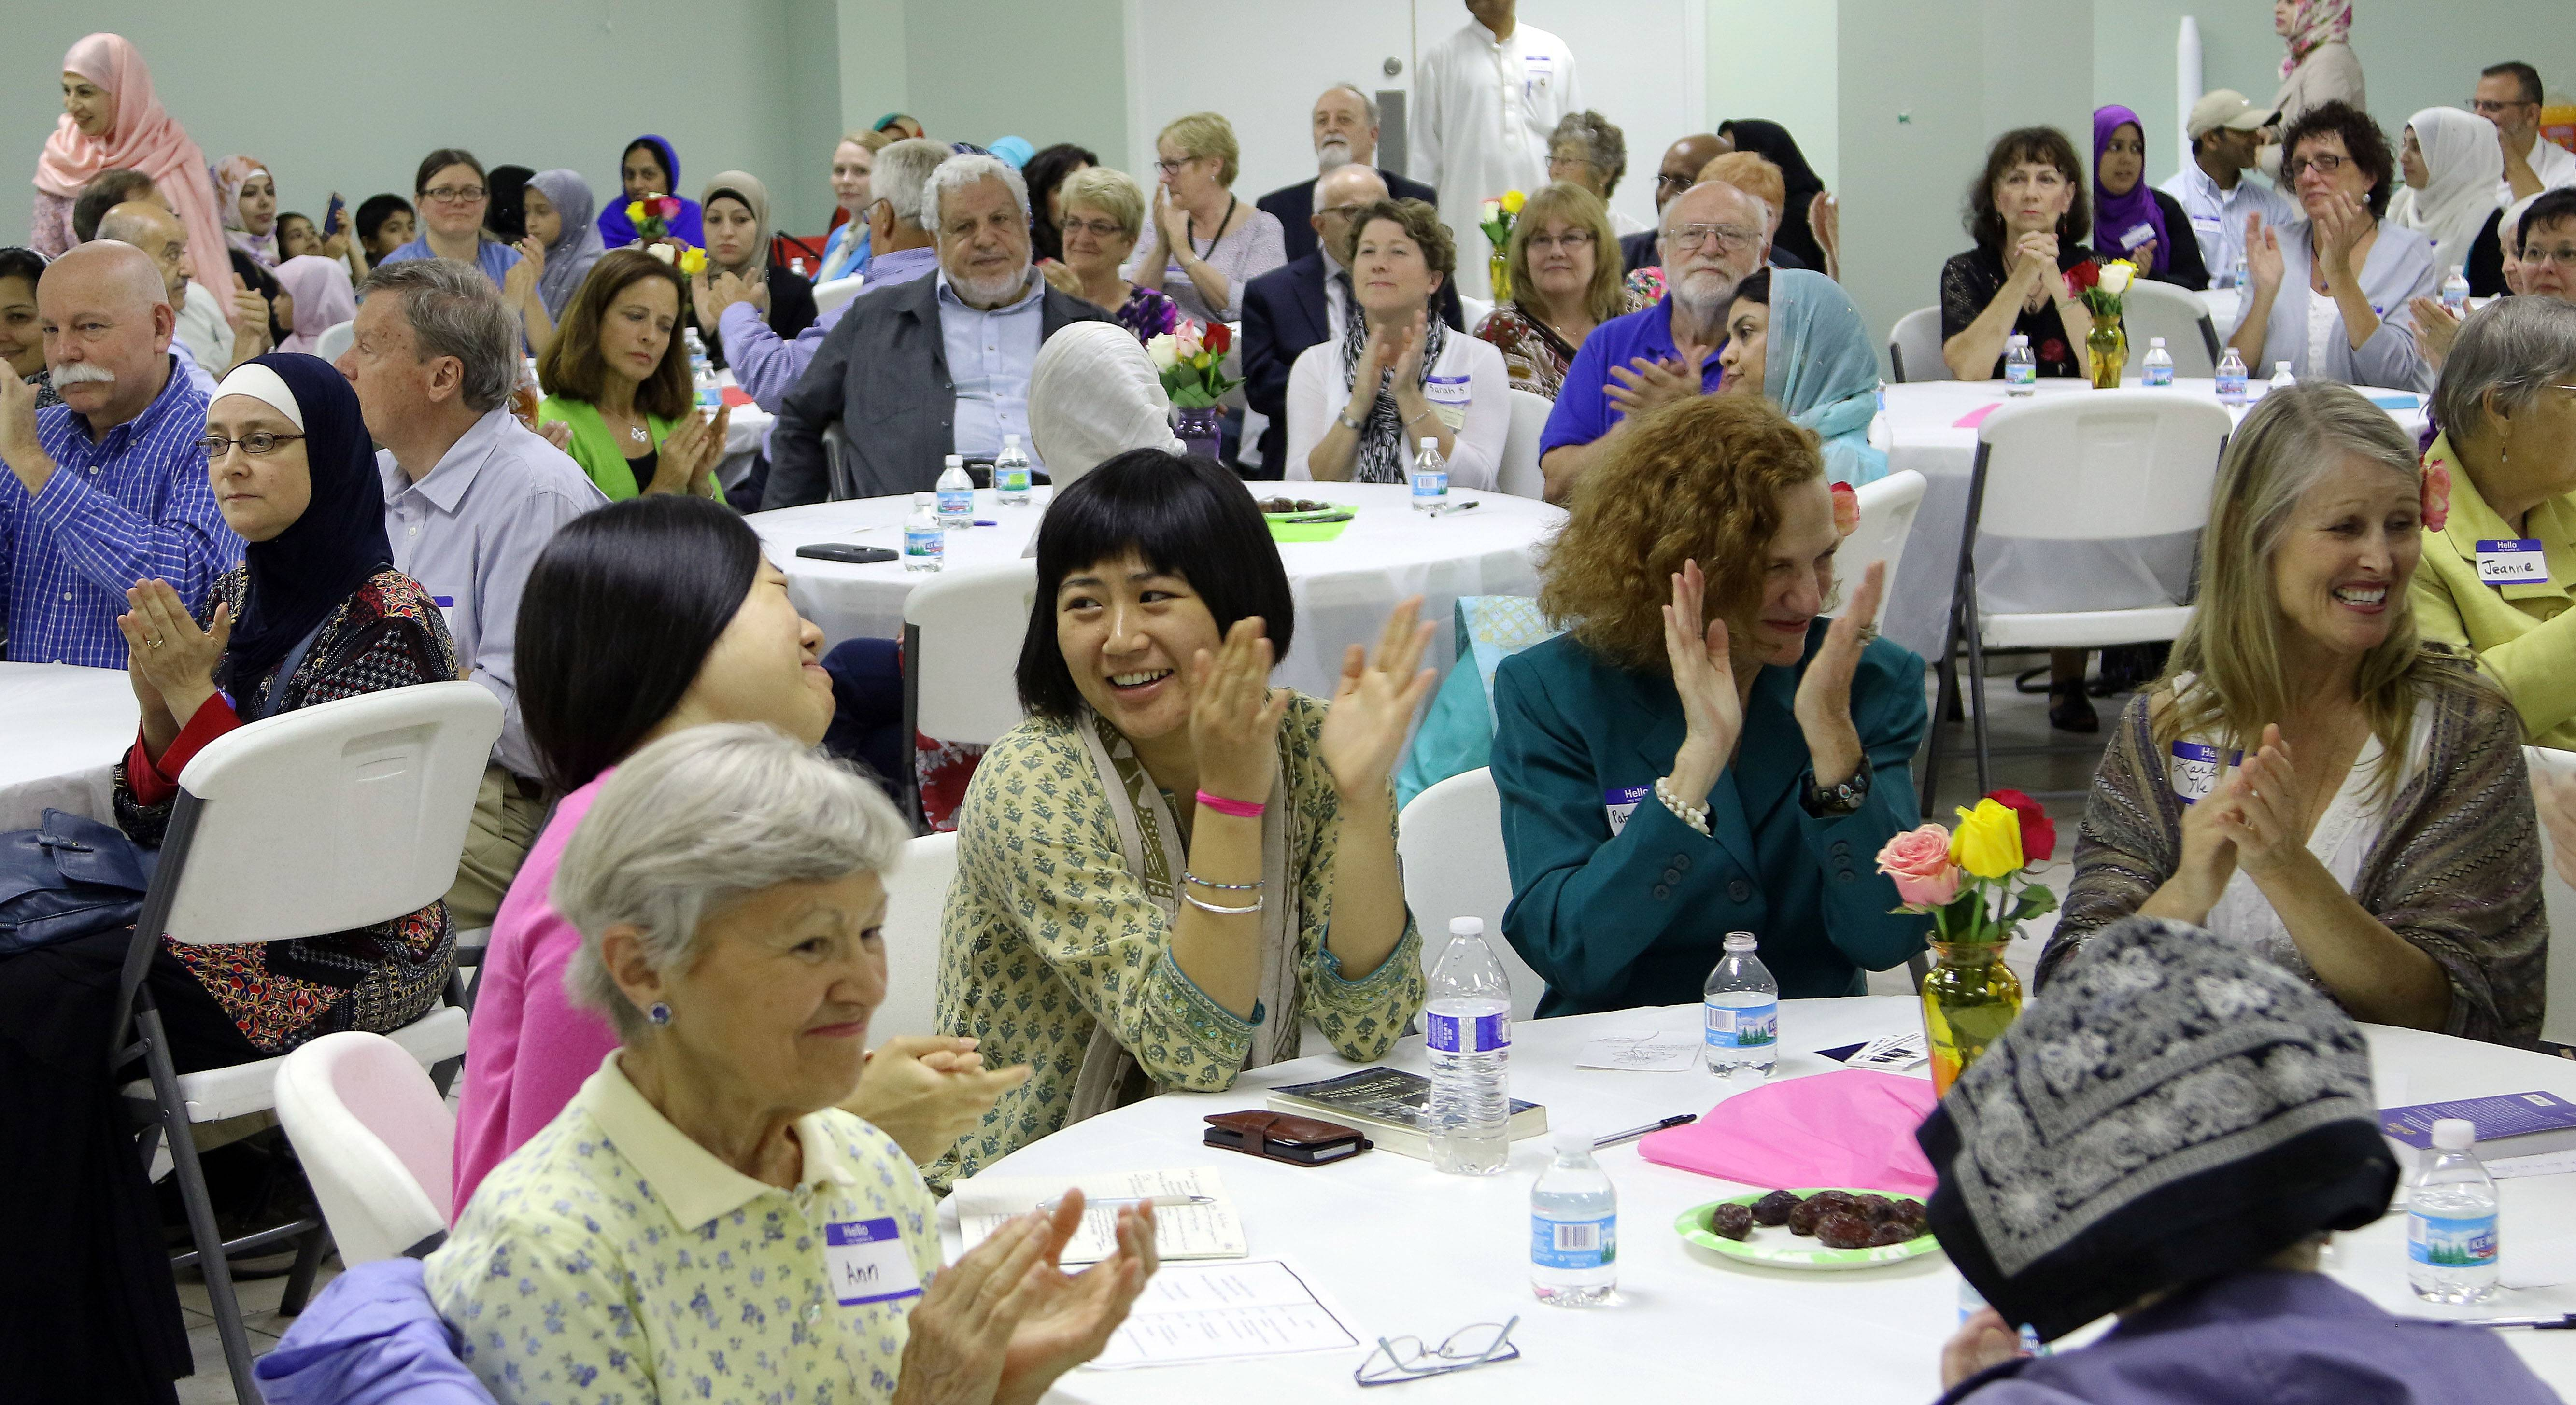 Attendees applaud remarks made during Wednesday's interfaith dinner at Islamic Foundation North in Libertyville.